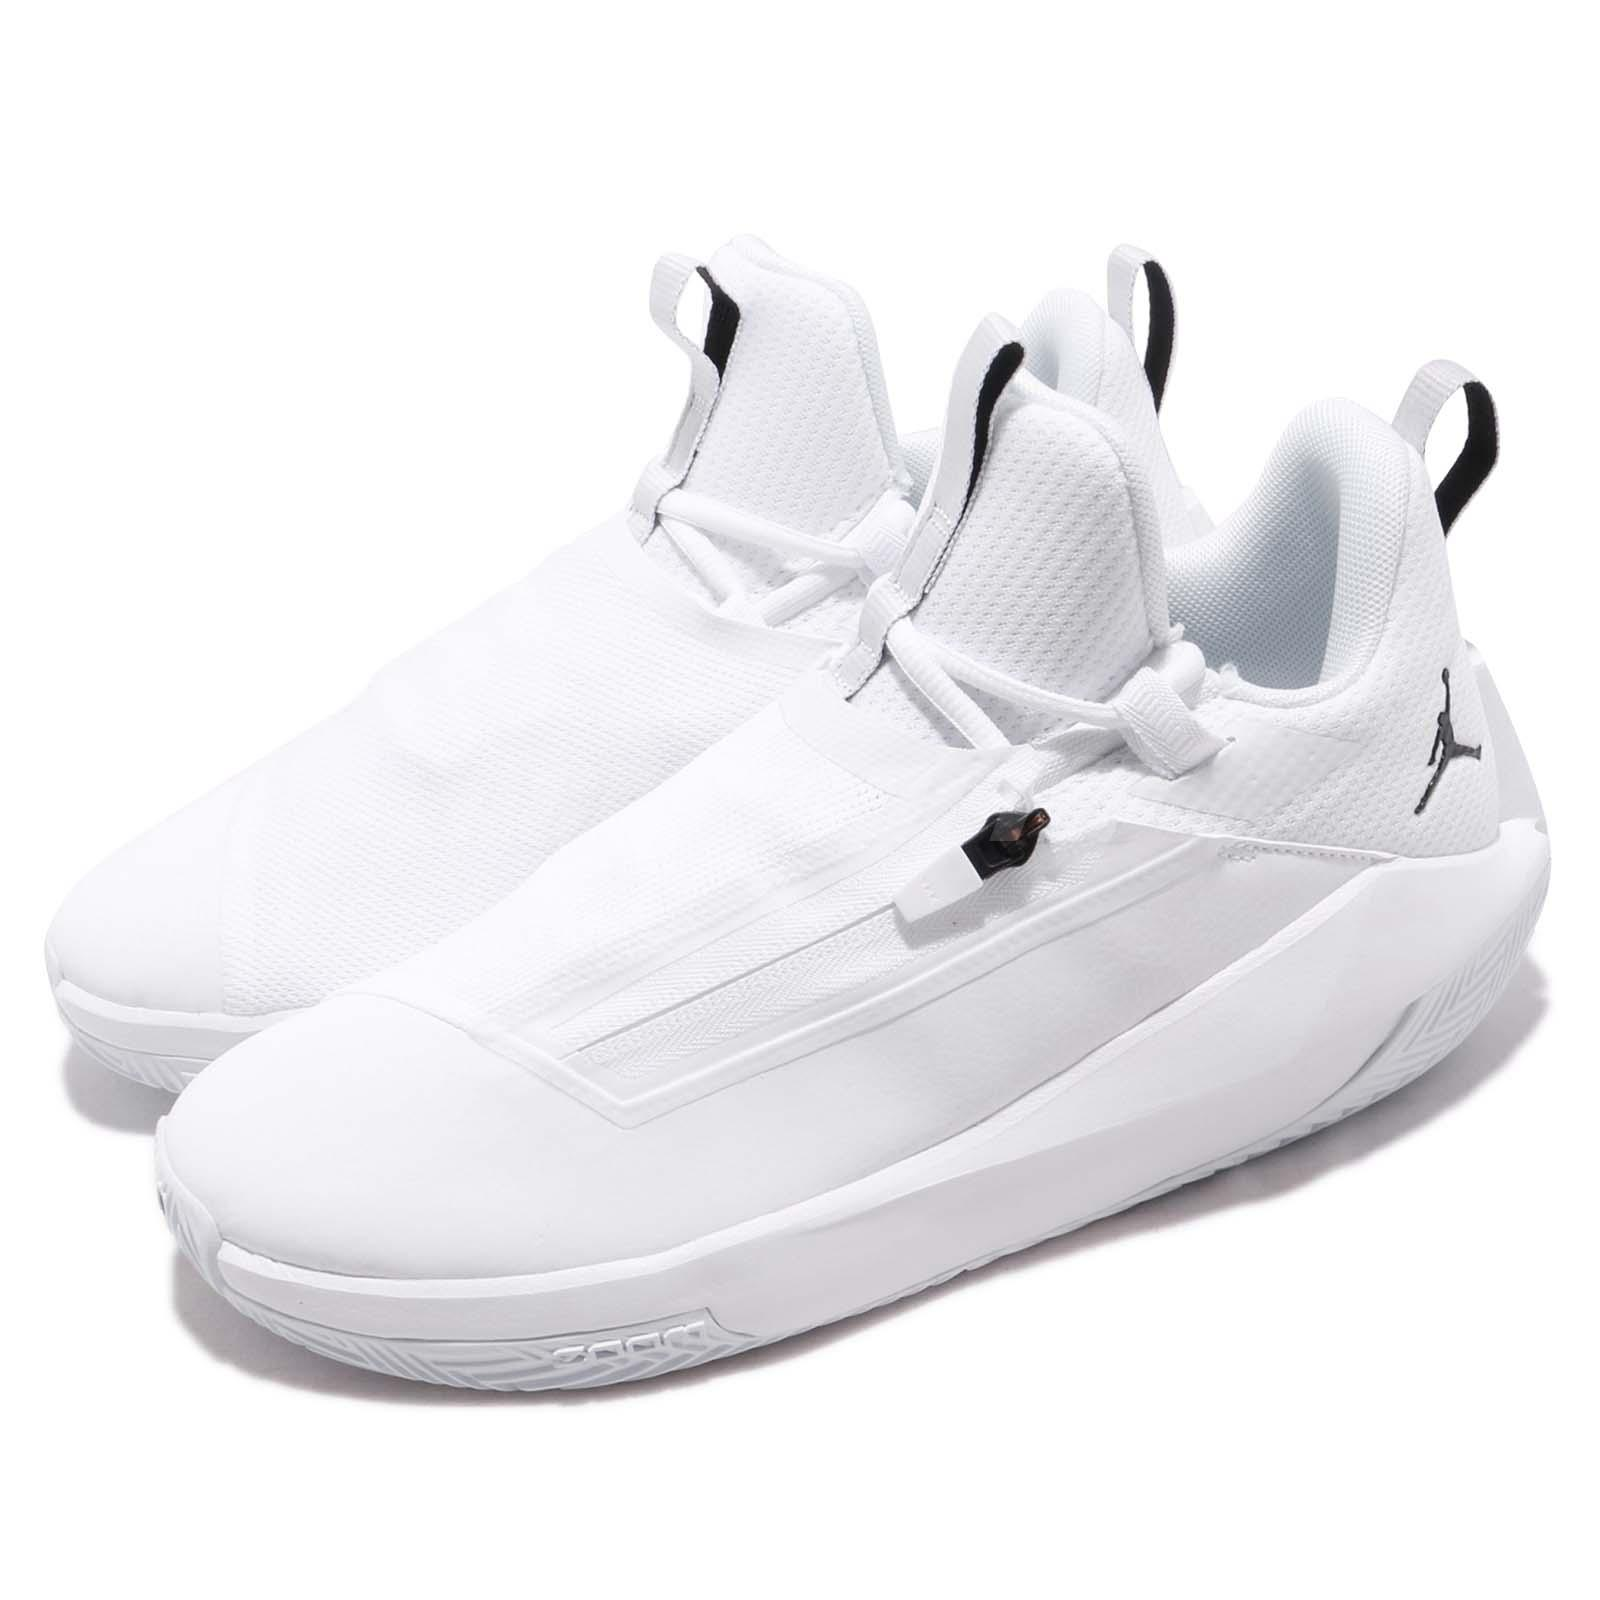 brand new bd6b1 389f5 Details about Nike Jordan Jumpman Hustle PF White Black Men Basketball Shoe  Sneaker AQ0394-102